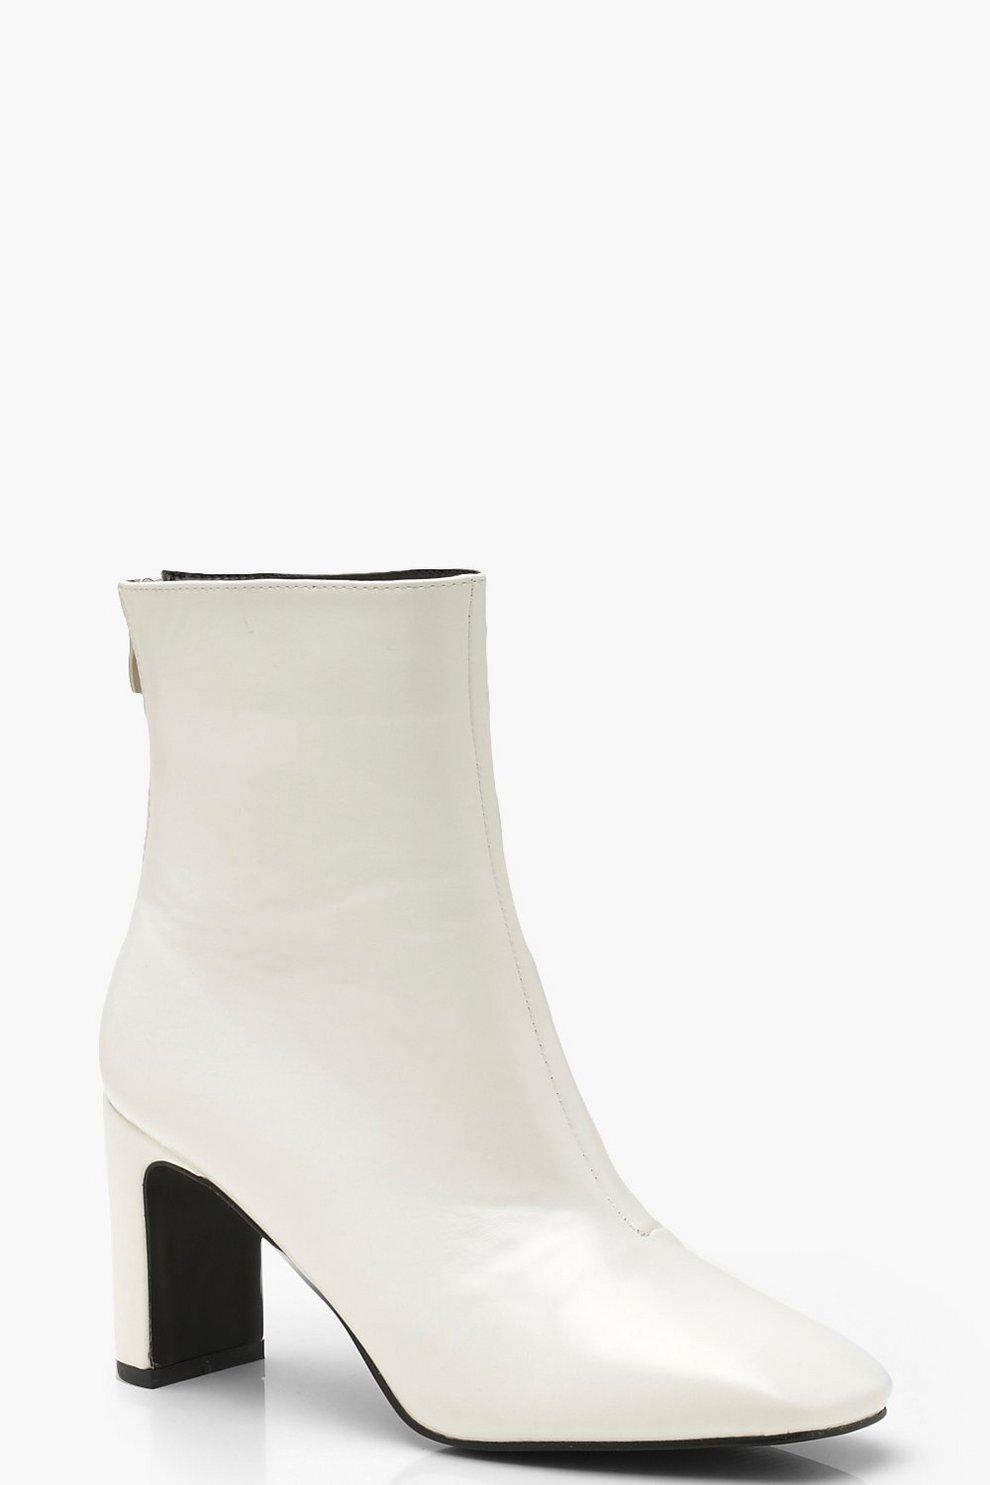 b005ec6e2a6a Womens White Low Heel Ankle Shoe Boots. Hover to zoom